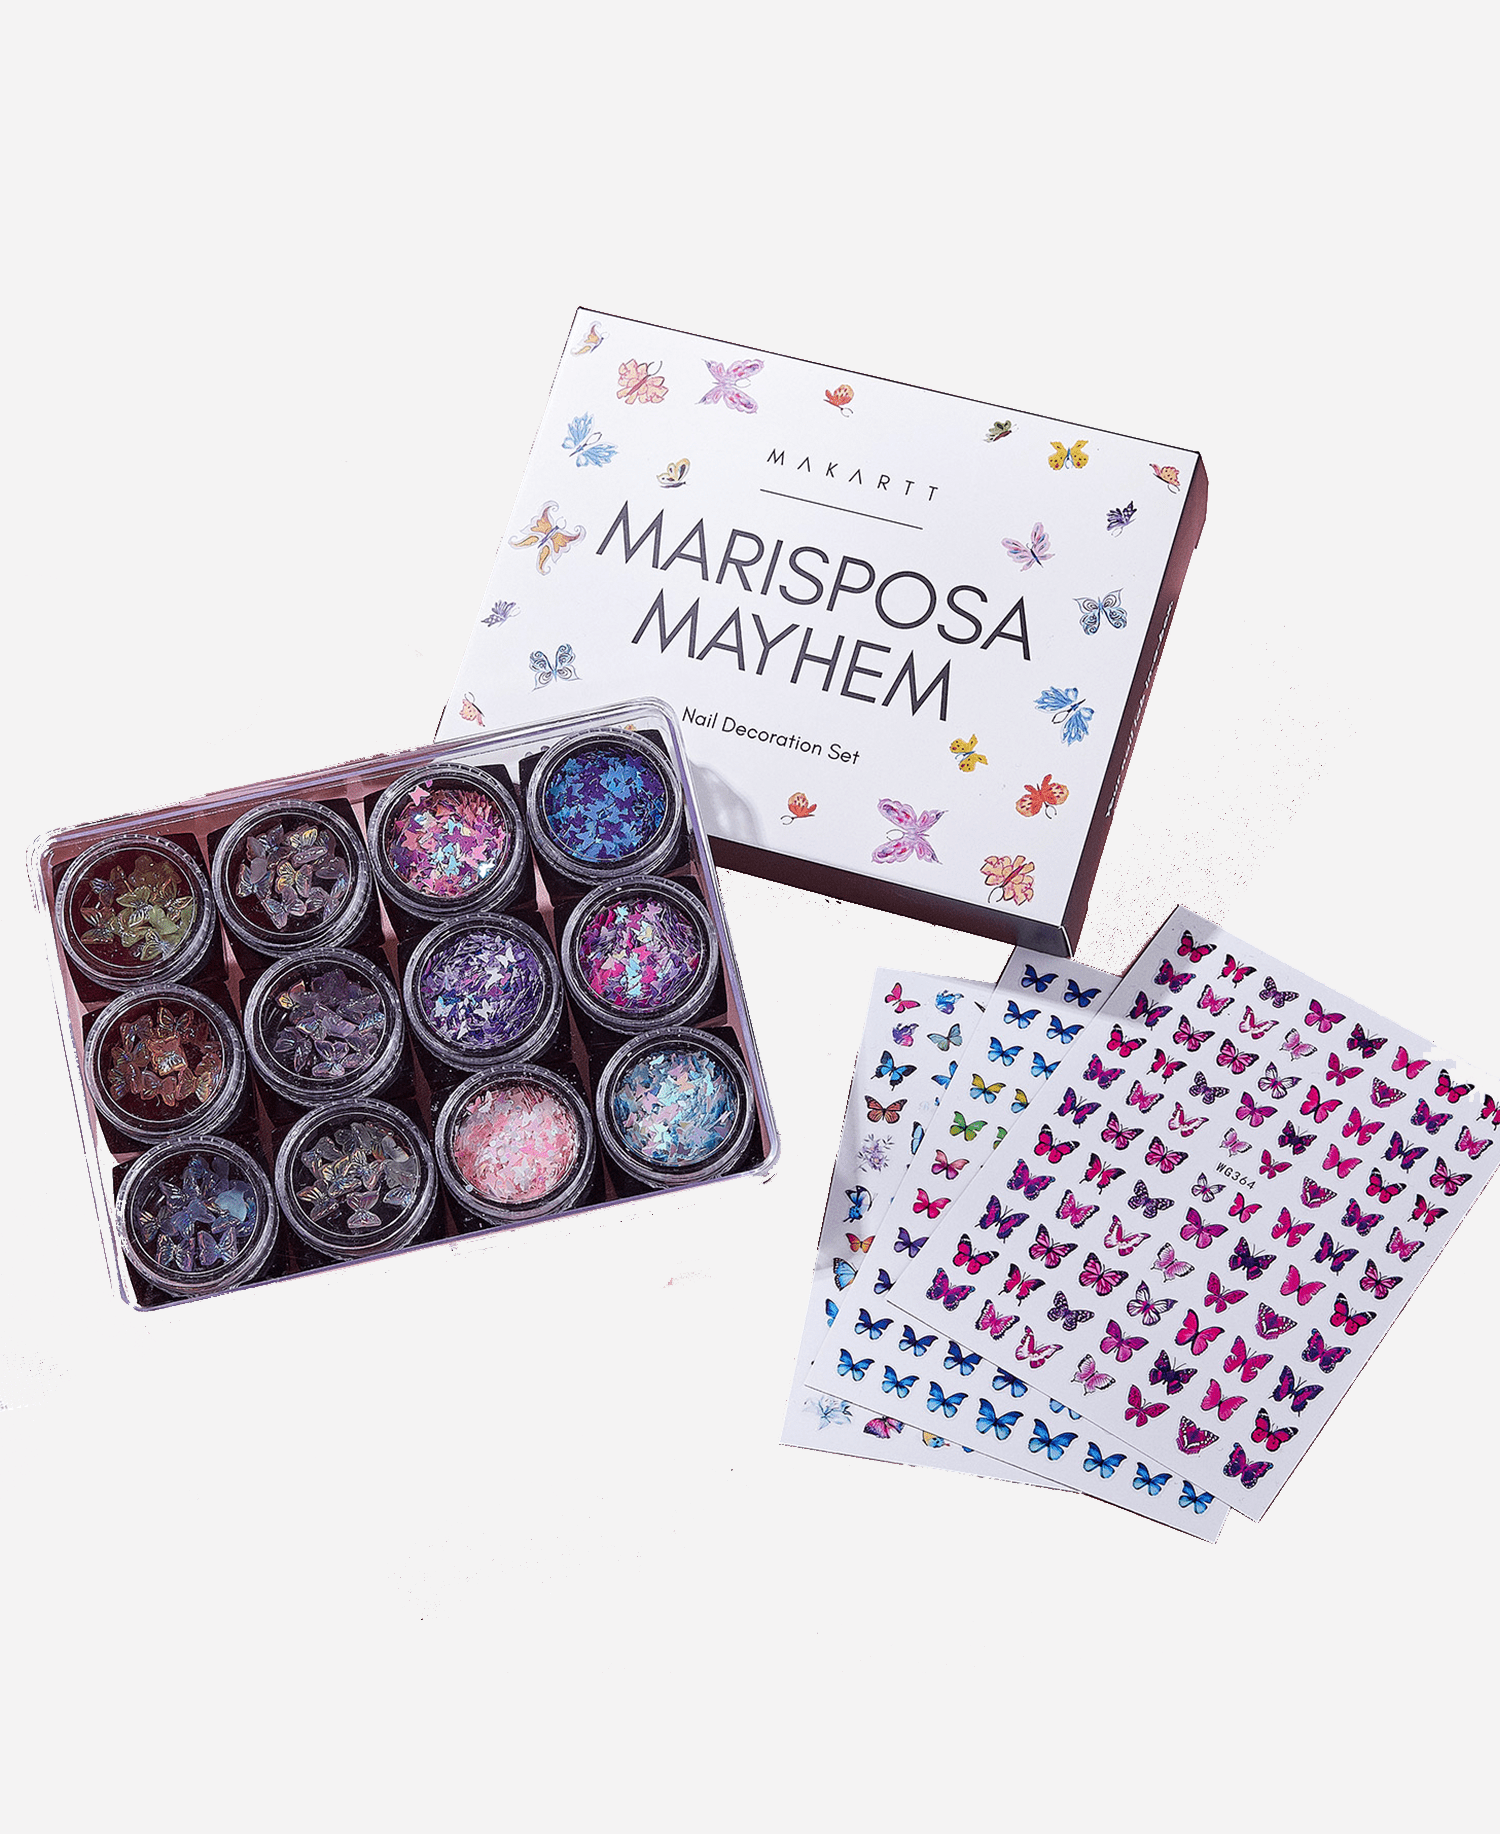 Mariposa Mayhem Nail Art Decoration Set